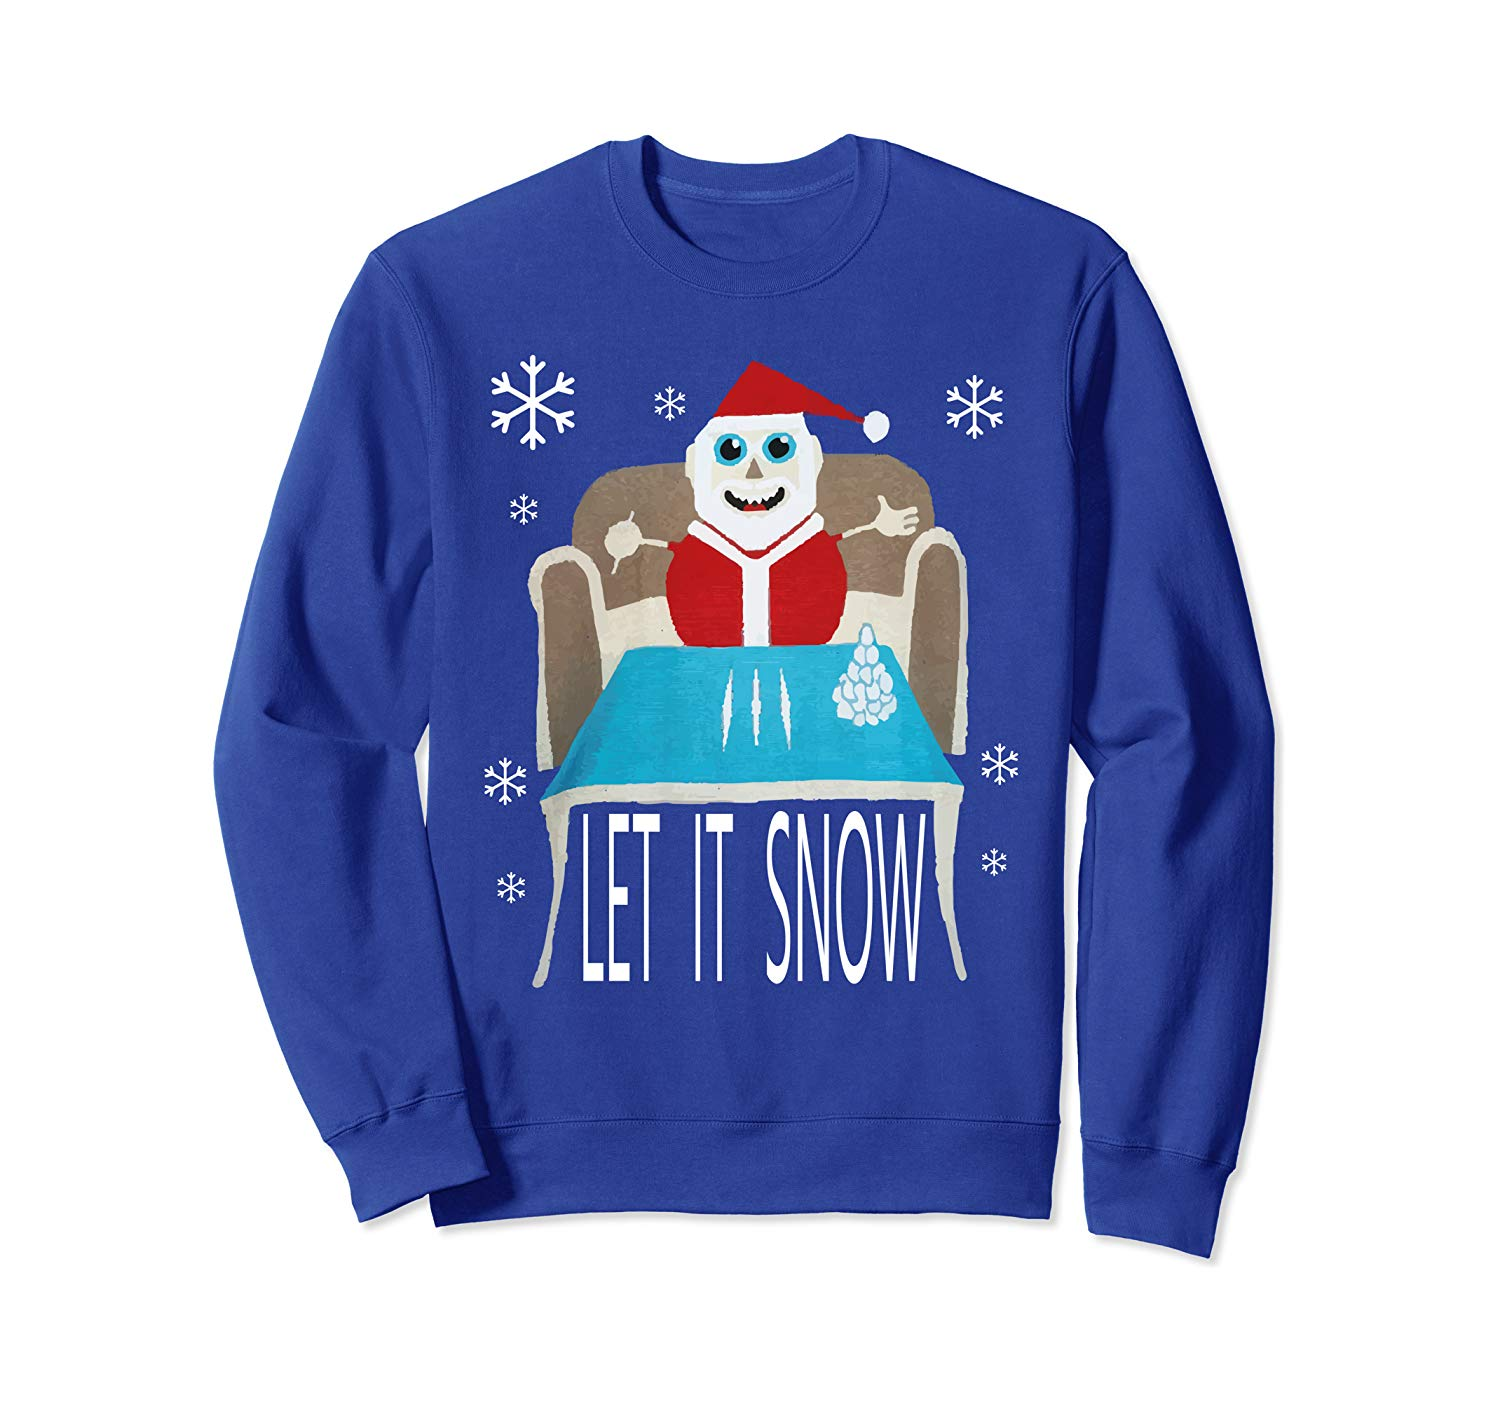 Walmart's Cocaine Santa Sweater Knockoff on Amazon